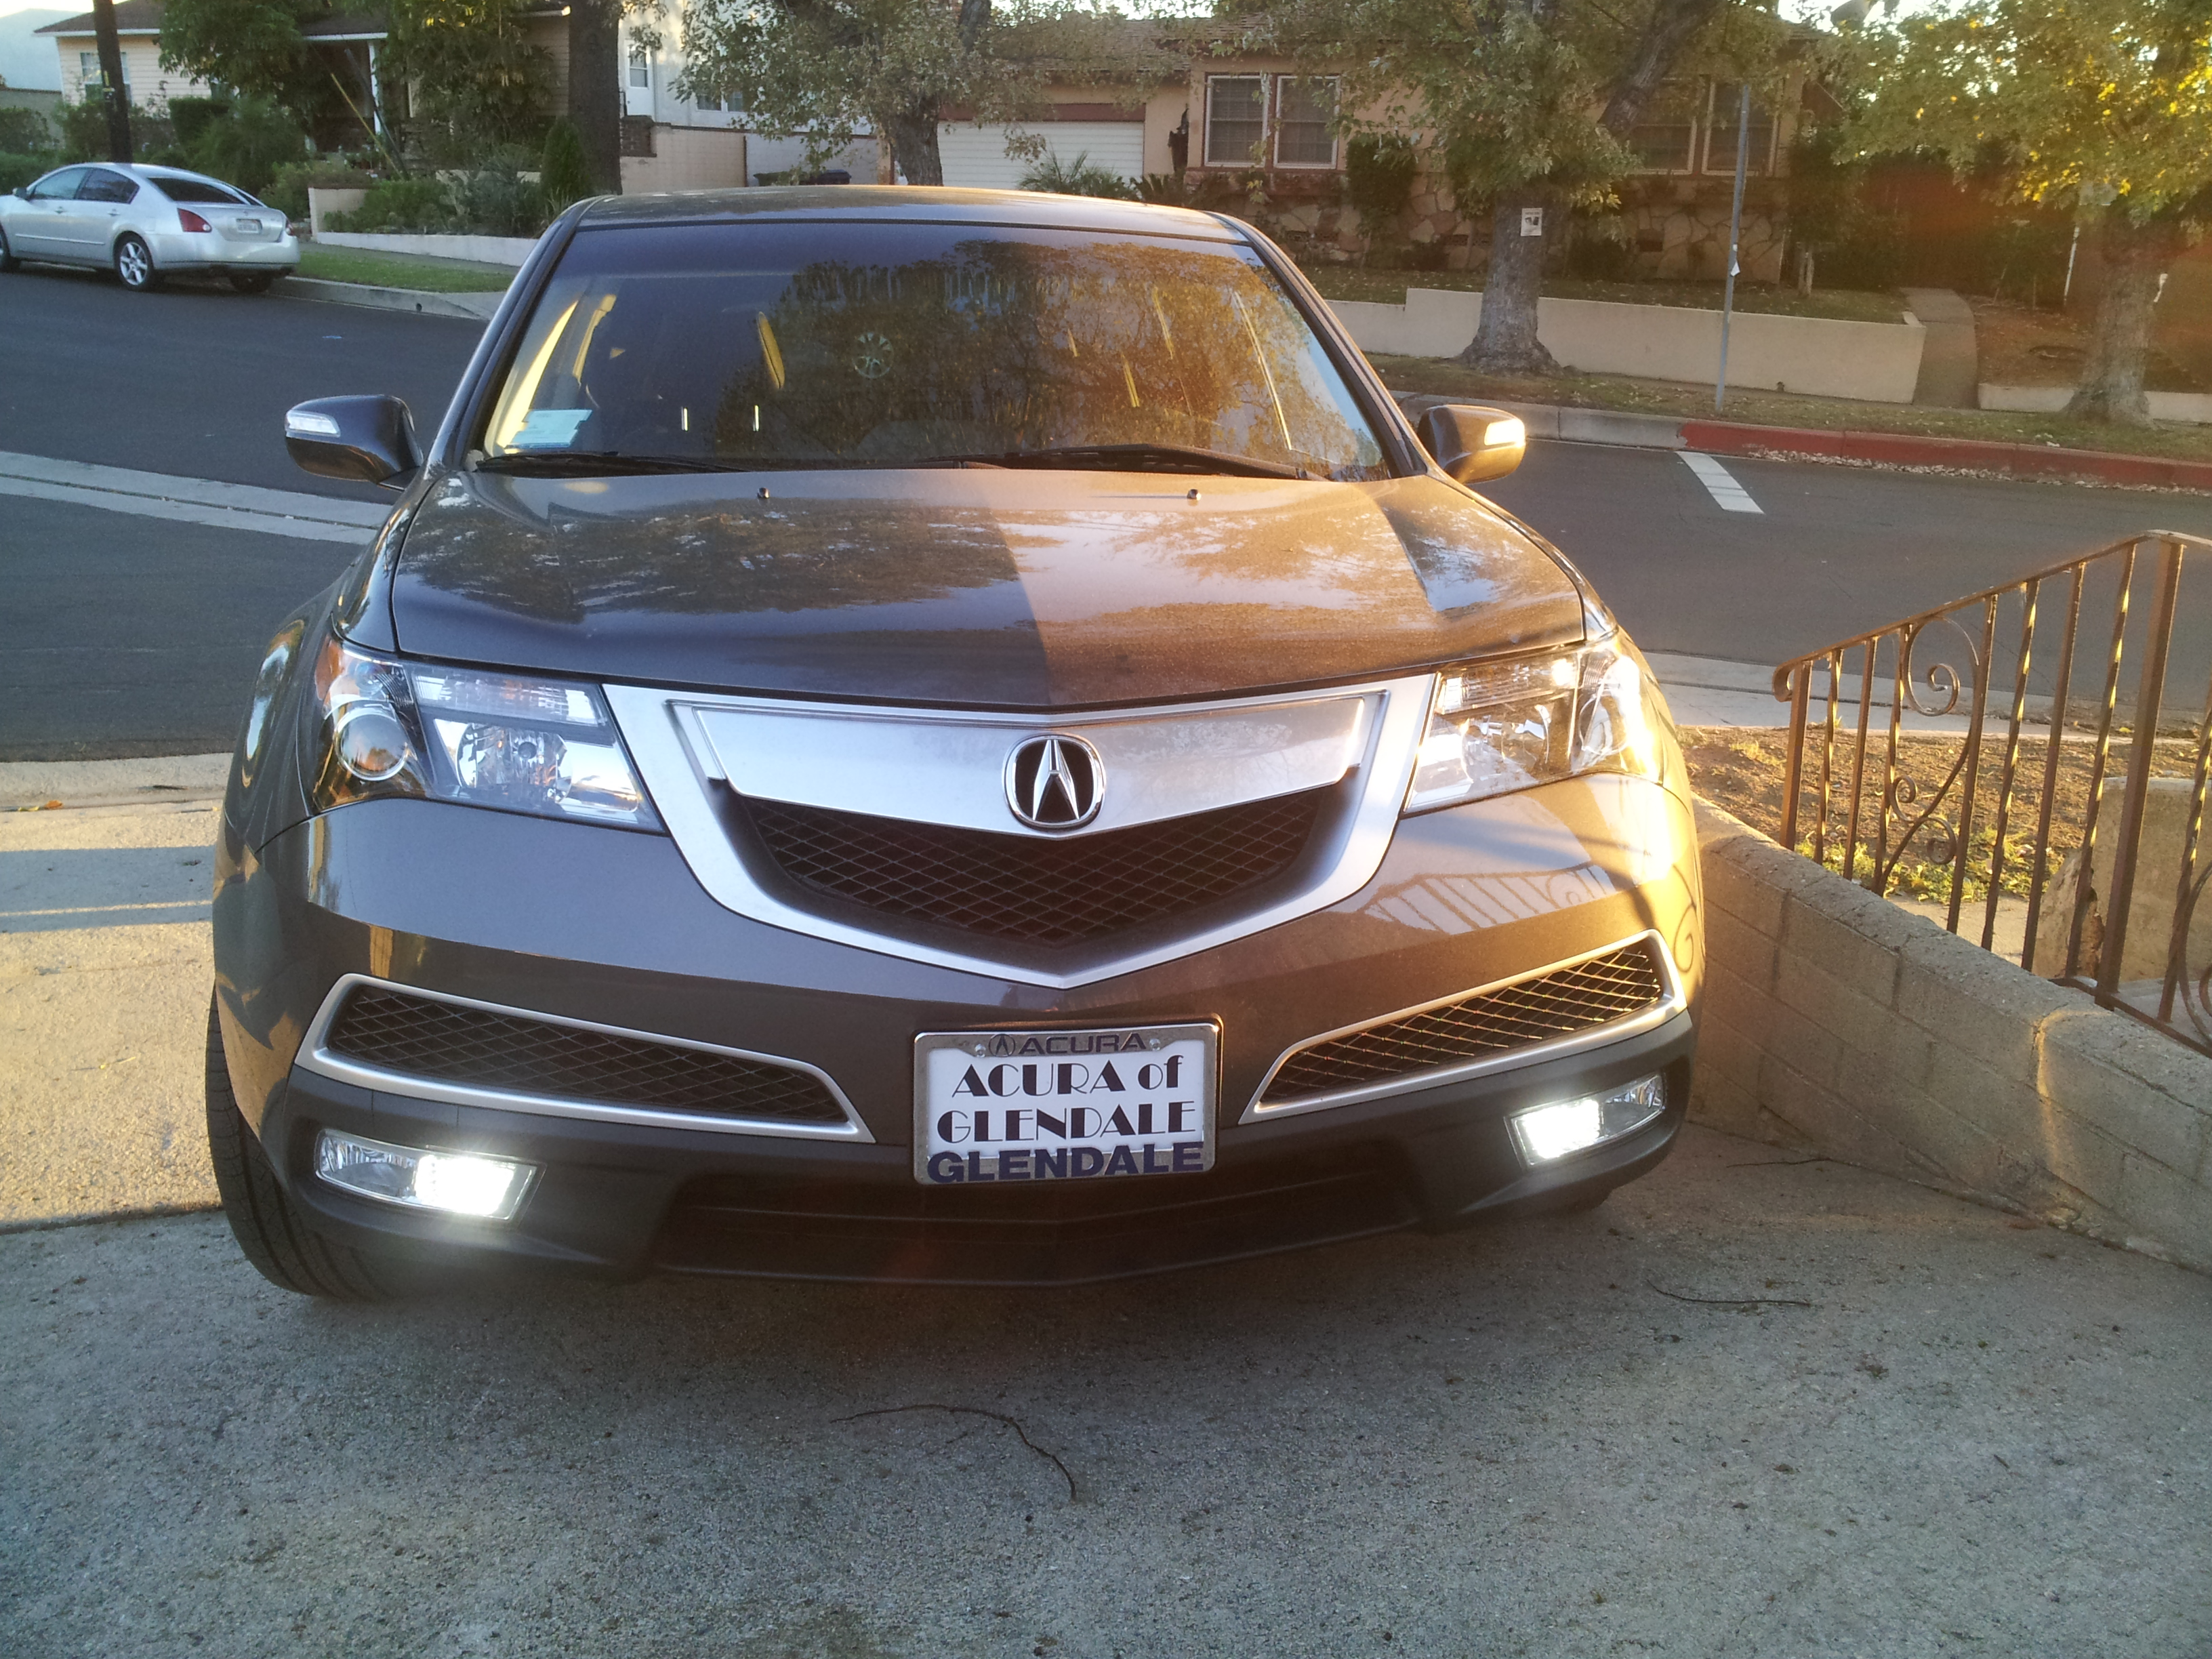 HID Fog/LED DRL Installed - PICS-20121025_175327.jpg